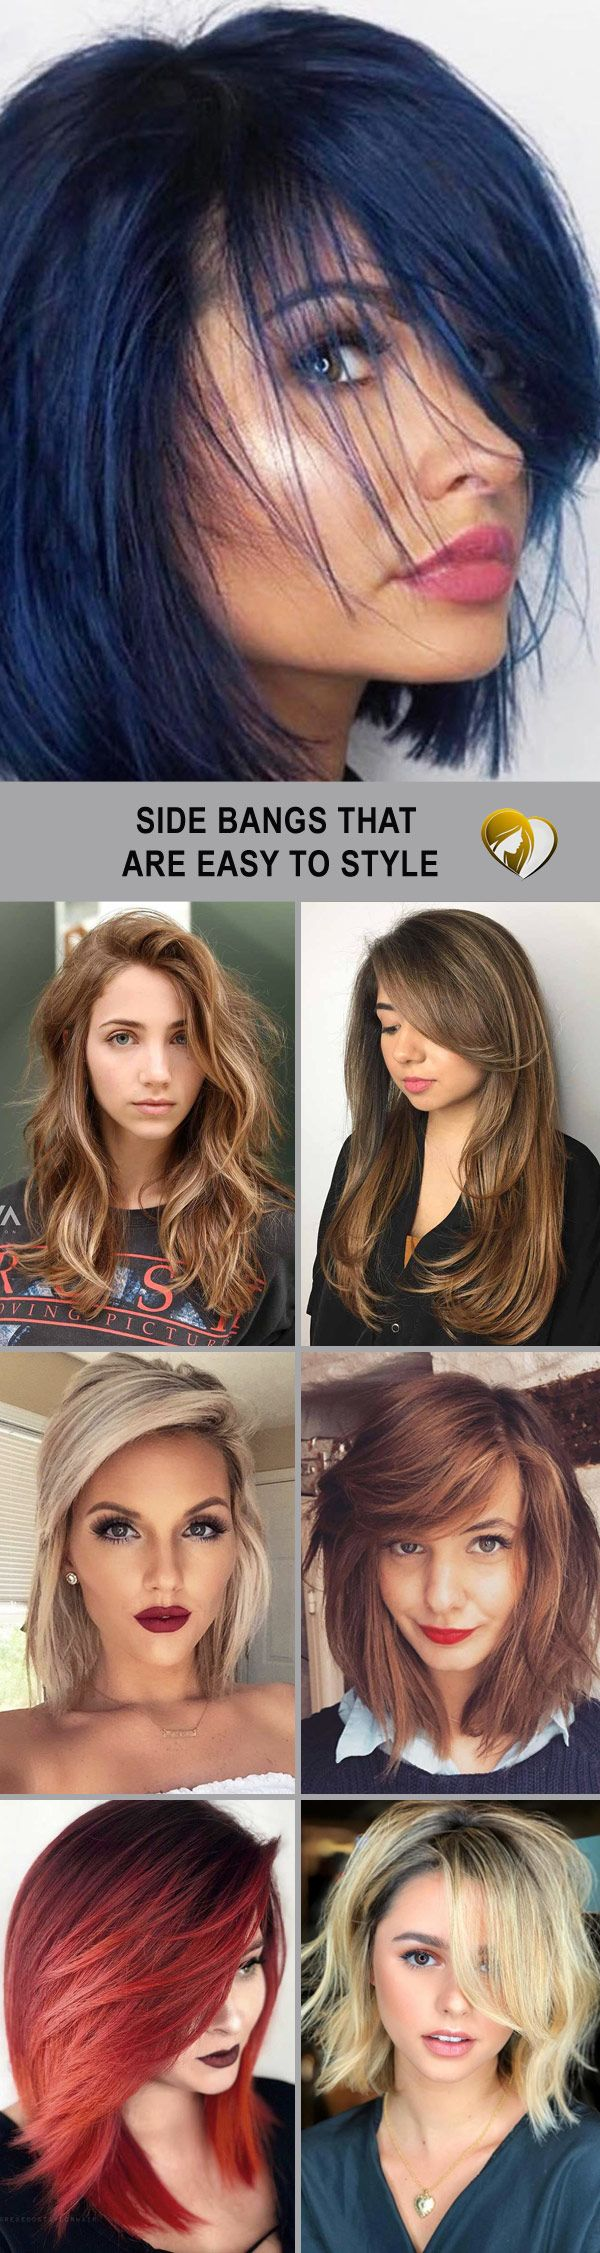 Side Bangs That Are Easy To Style